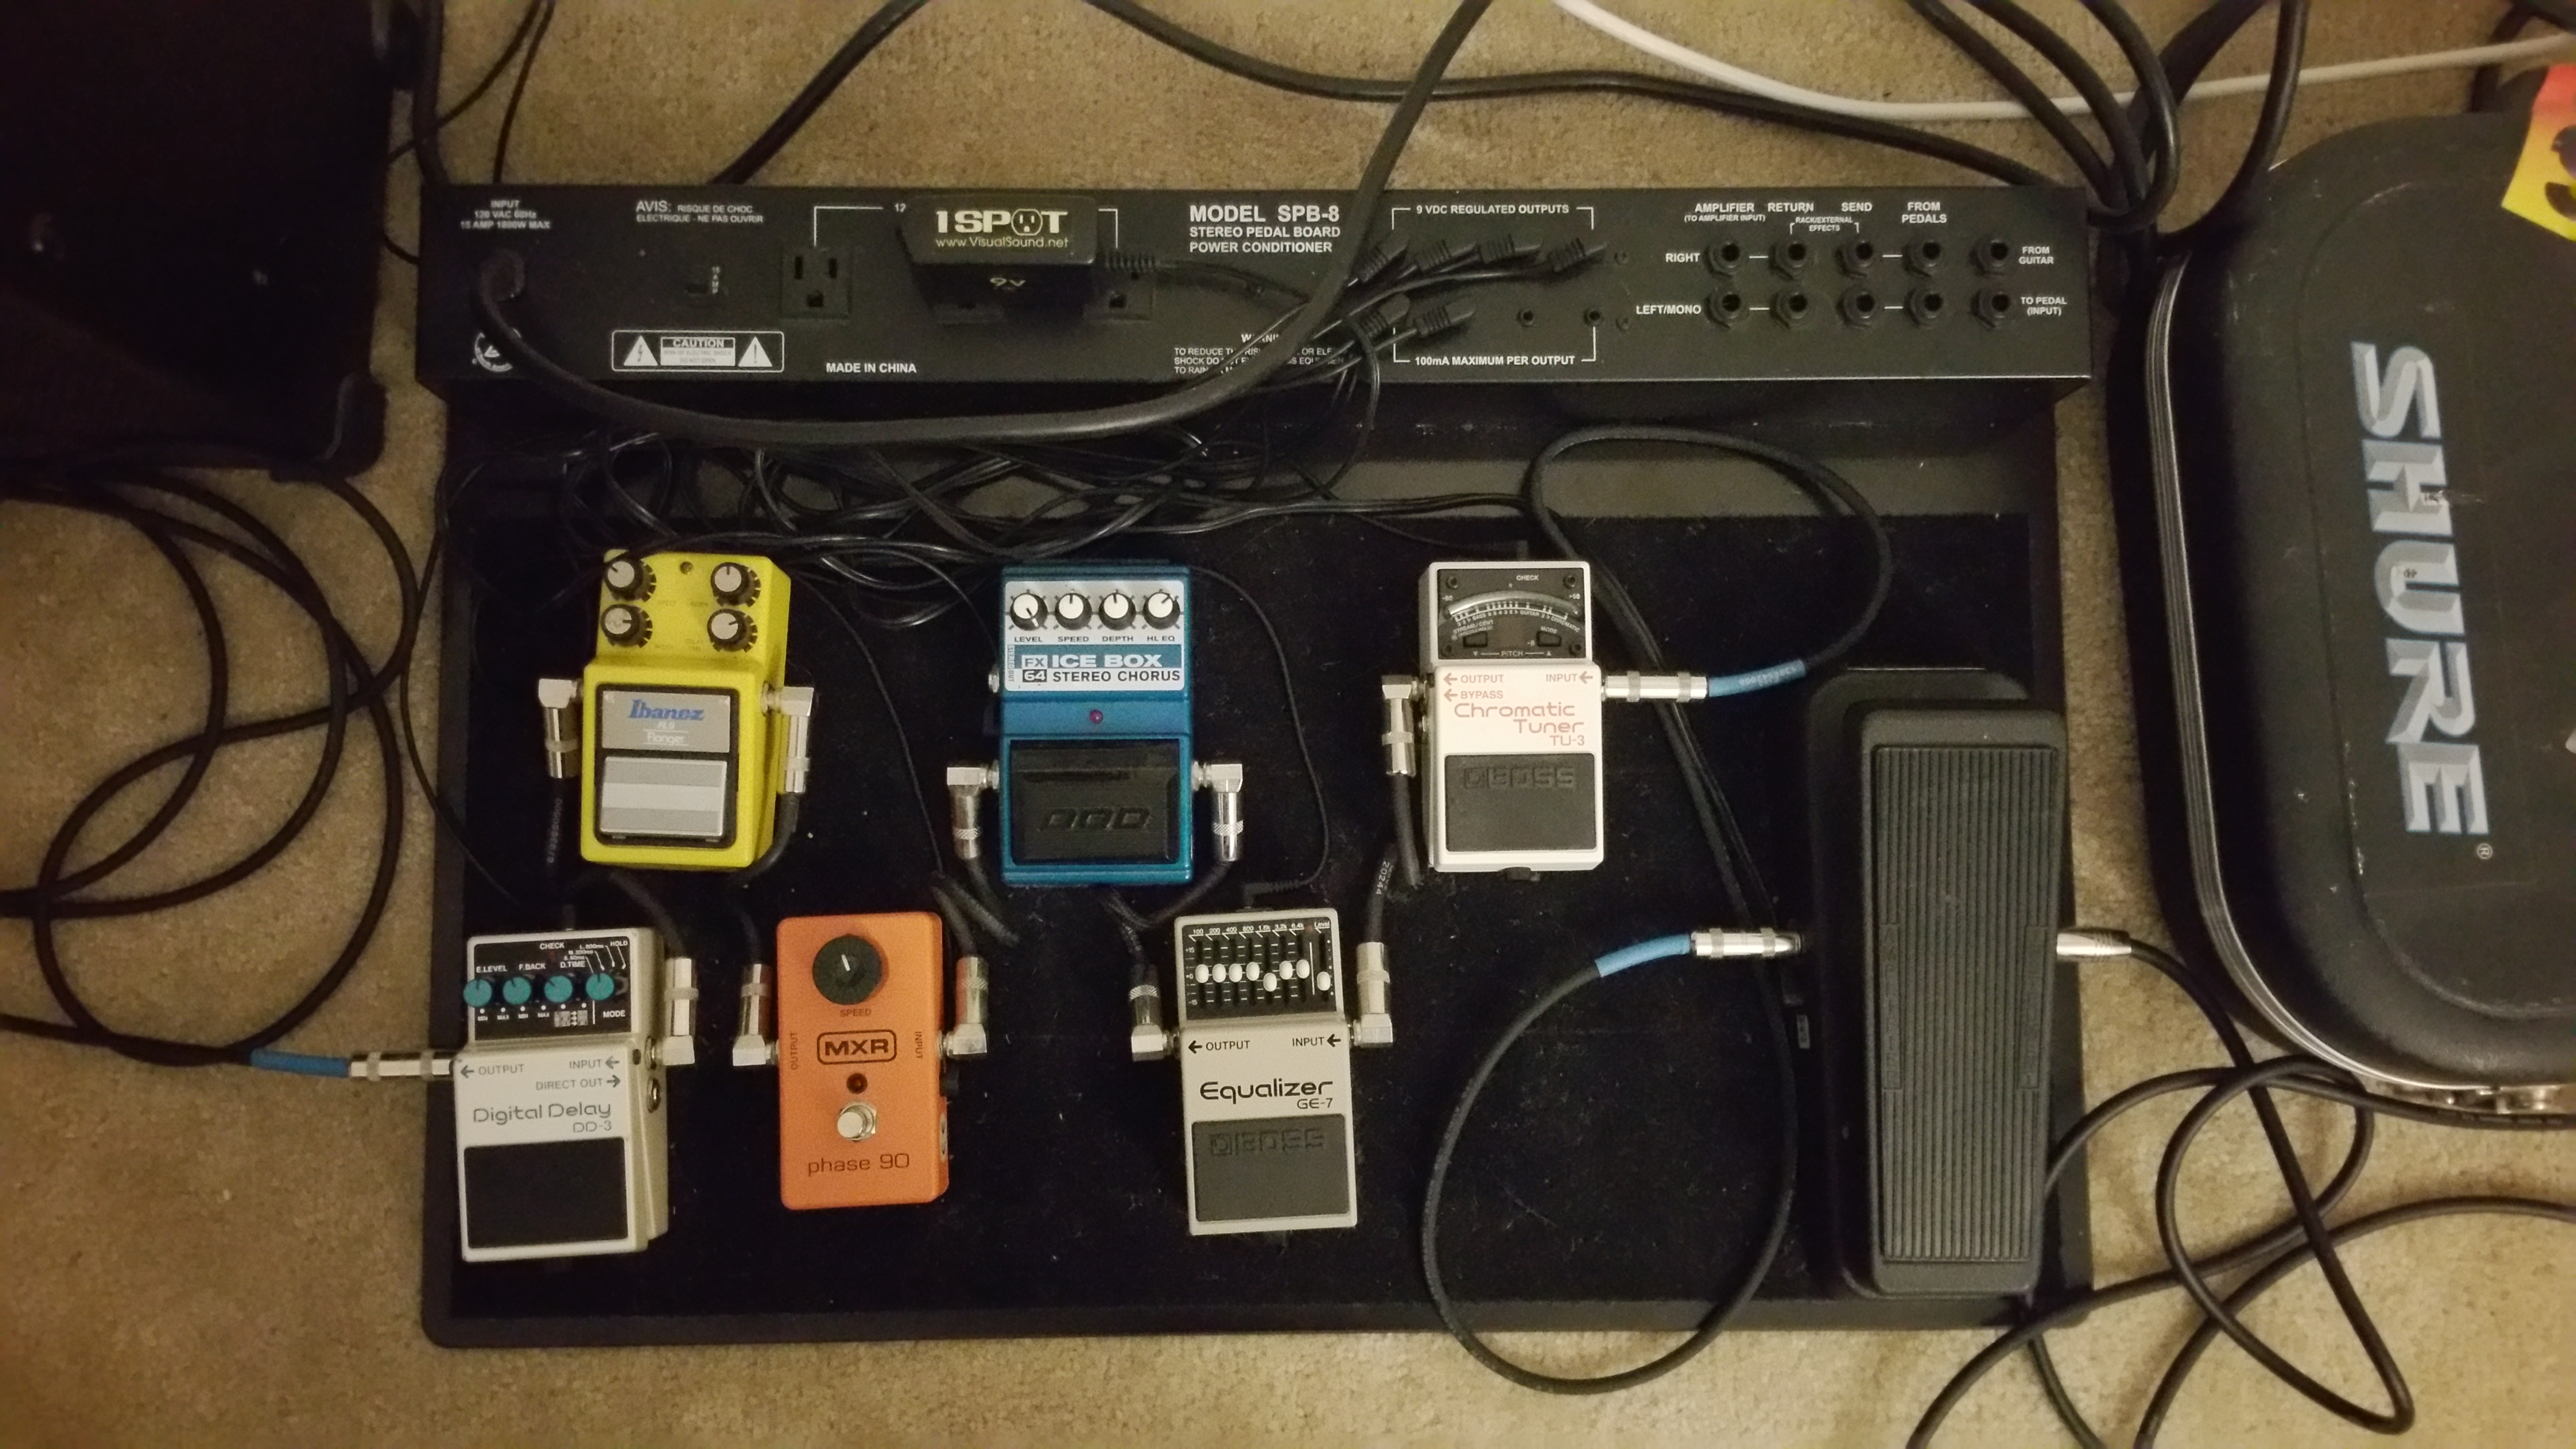 Background Equipment And First Song Matthaeus Music At Amp T U Verse Home Wiring Spb 8 Pedal Board Effects From Left To Right Boss Dd 3 Delay Ibanez Fl 9 Flanger Mxr Phase 90 Dod Fx64 Chorus Ge 7 Equalizer Tu